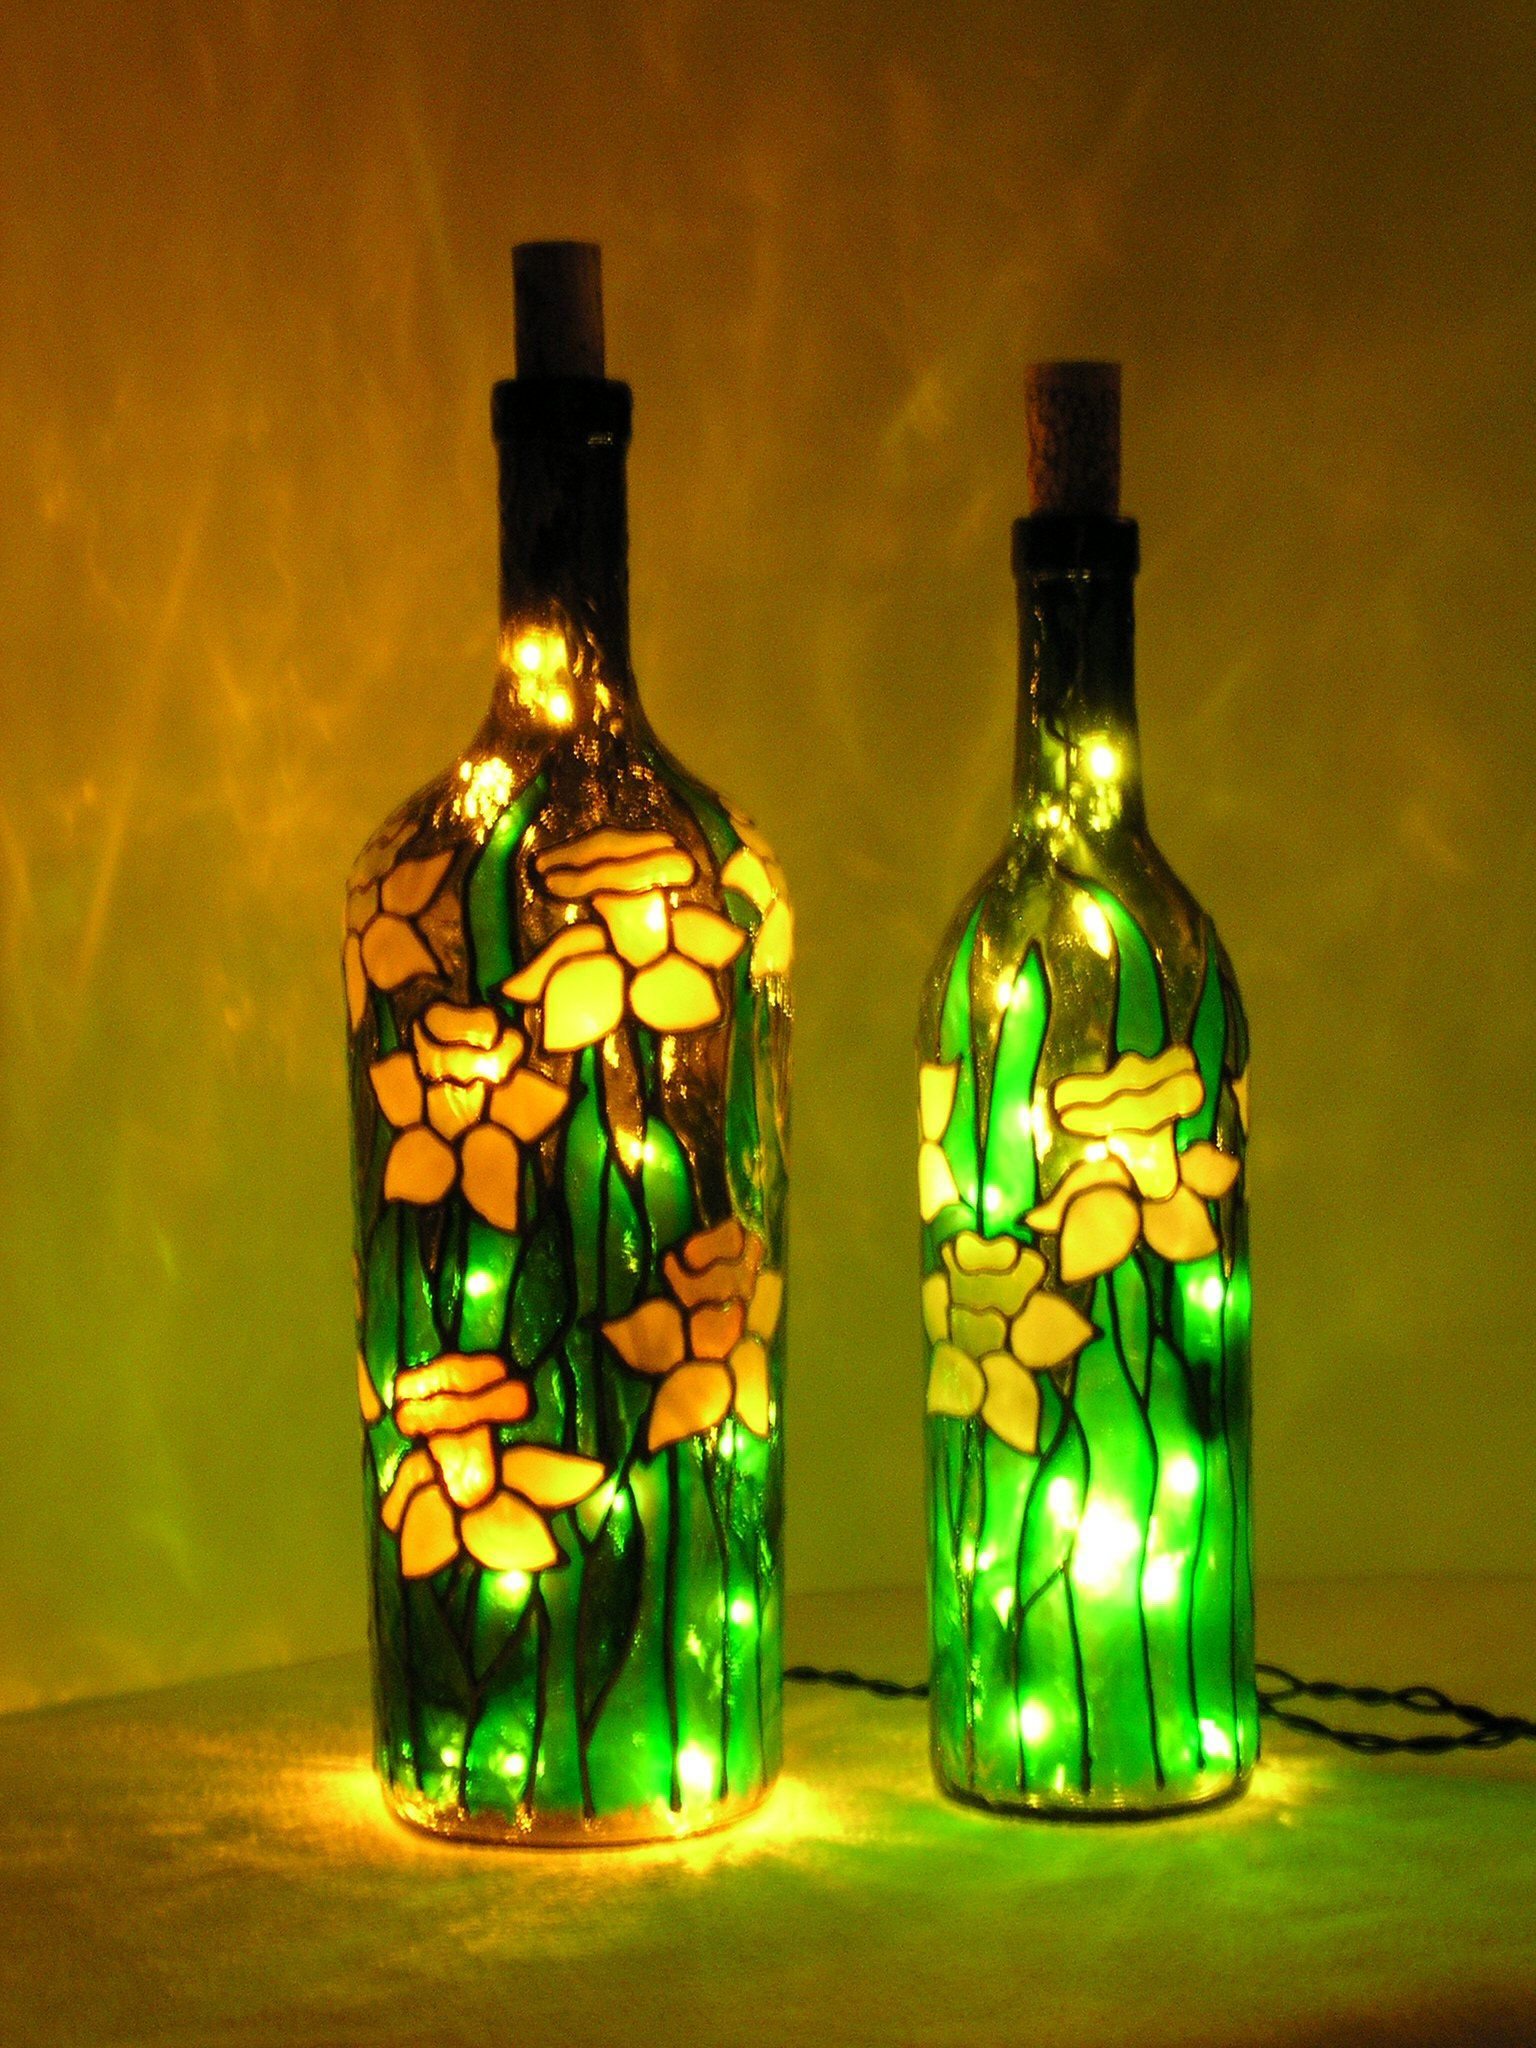 Daffodils Stained Glass Bottle With Lights Glass Bottle Crafts Wine Bottle Crafts Wine Bottle Art